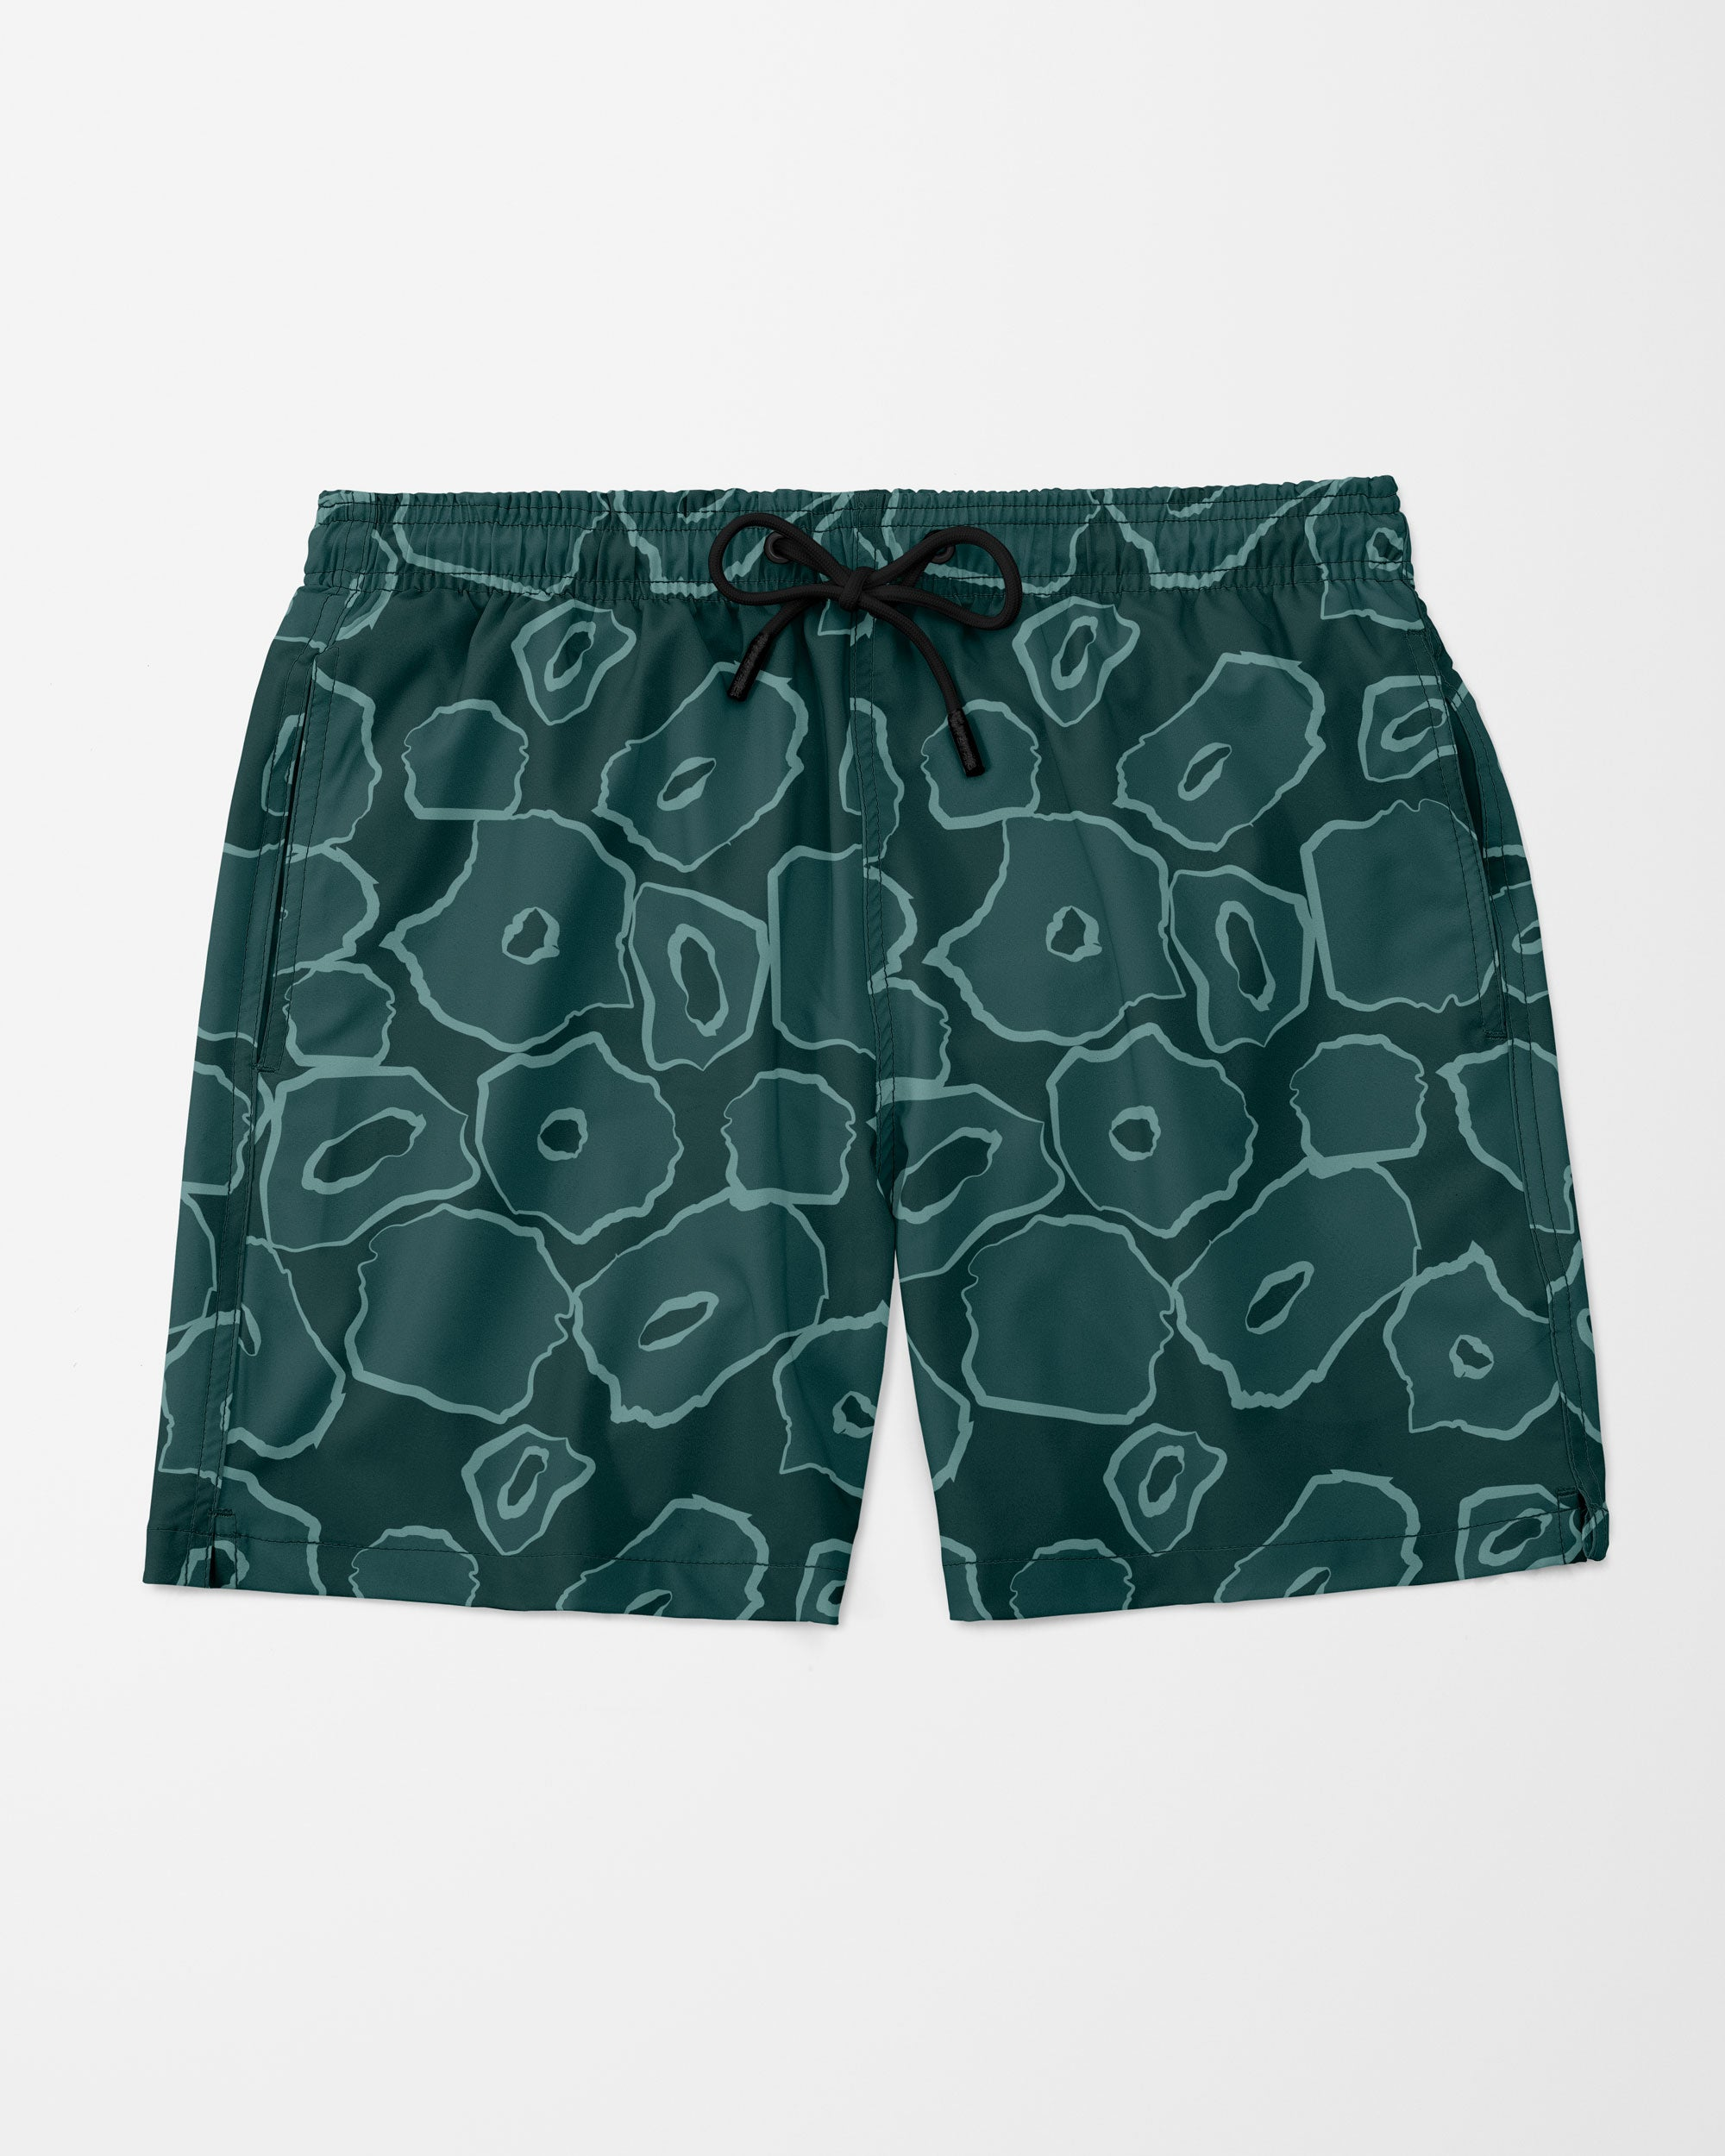 Big Cat Swim Shorts, Green